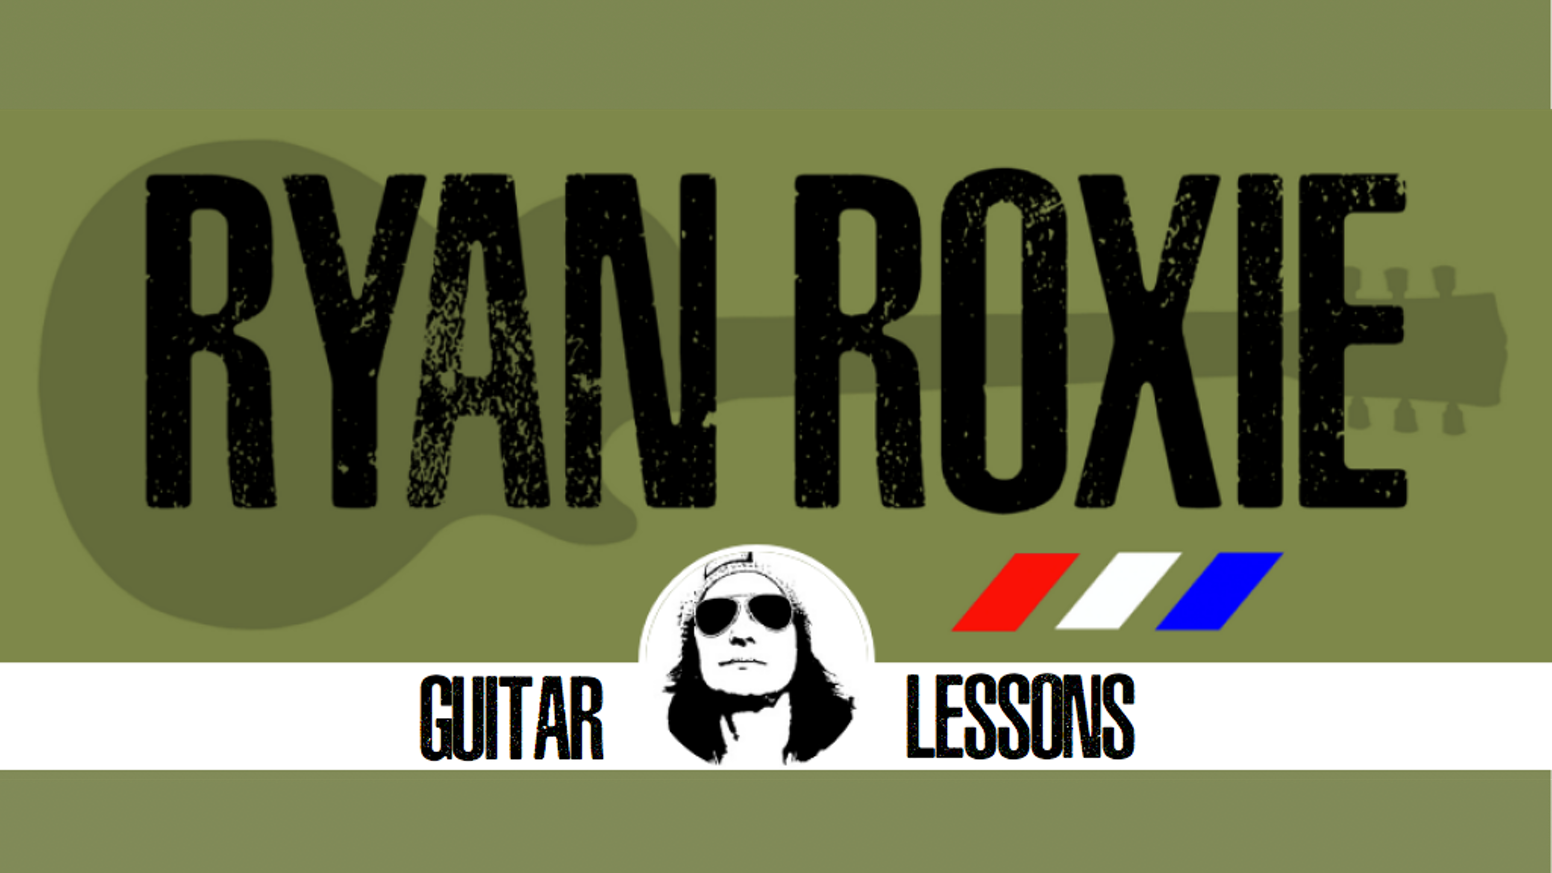 If you are Viewing this Page AFTER the campaign has closed, PLEASE READ Story below especially if YOU are interested in learning the Guitar...Thanks! ;) - Roxie